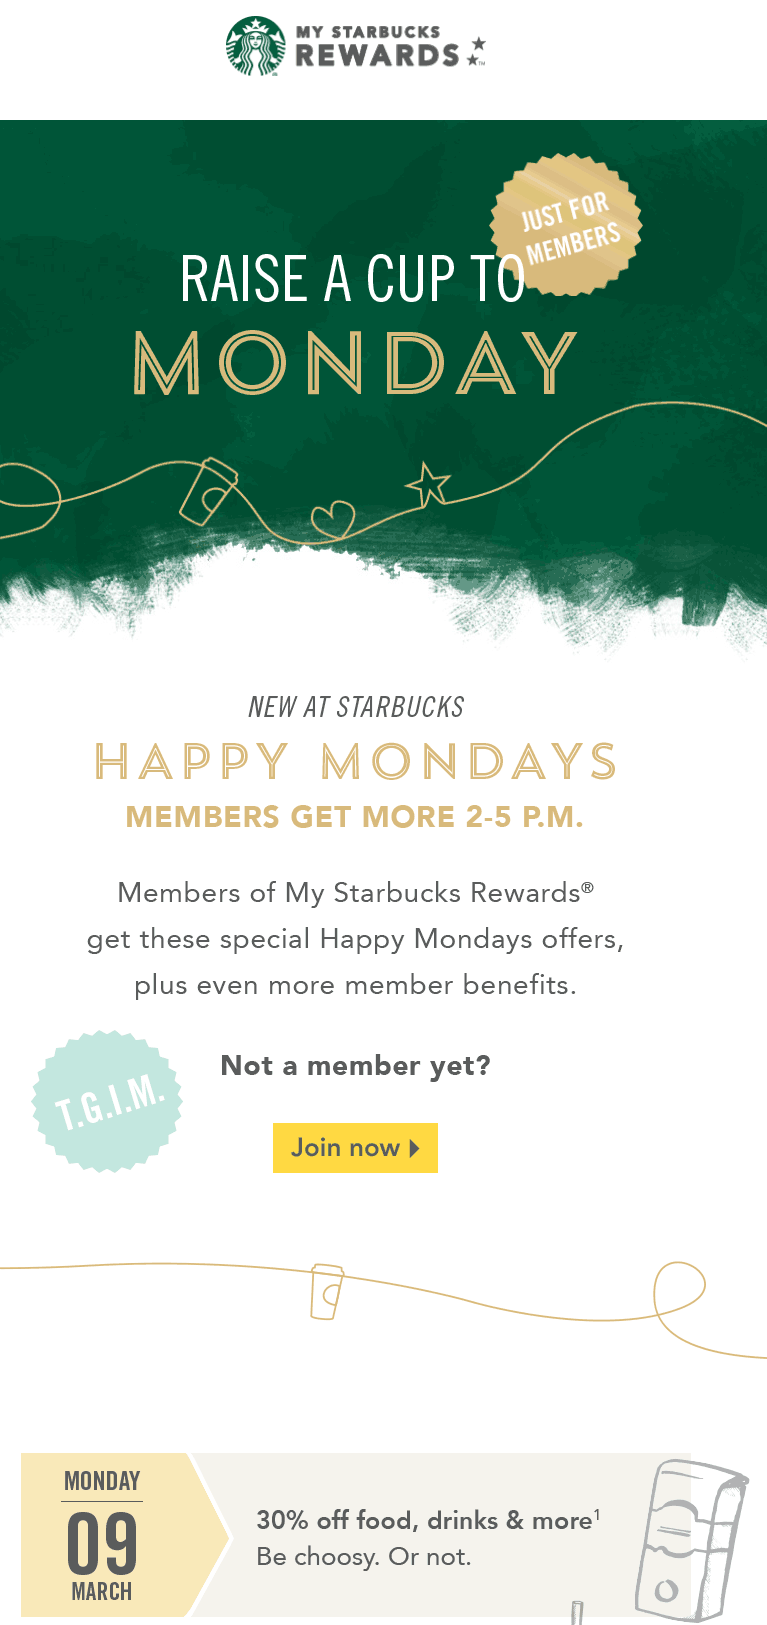 Starbucks Coupon October 2017 30% off 2-5pm Monday via free rewards card at Starbucks